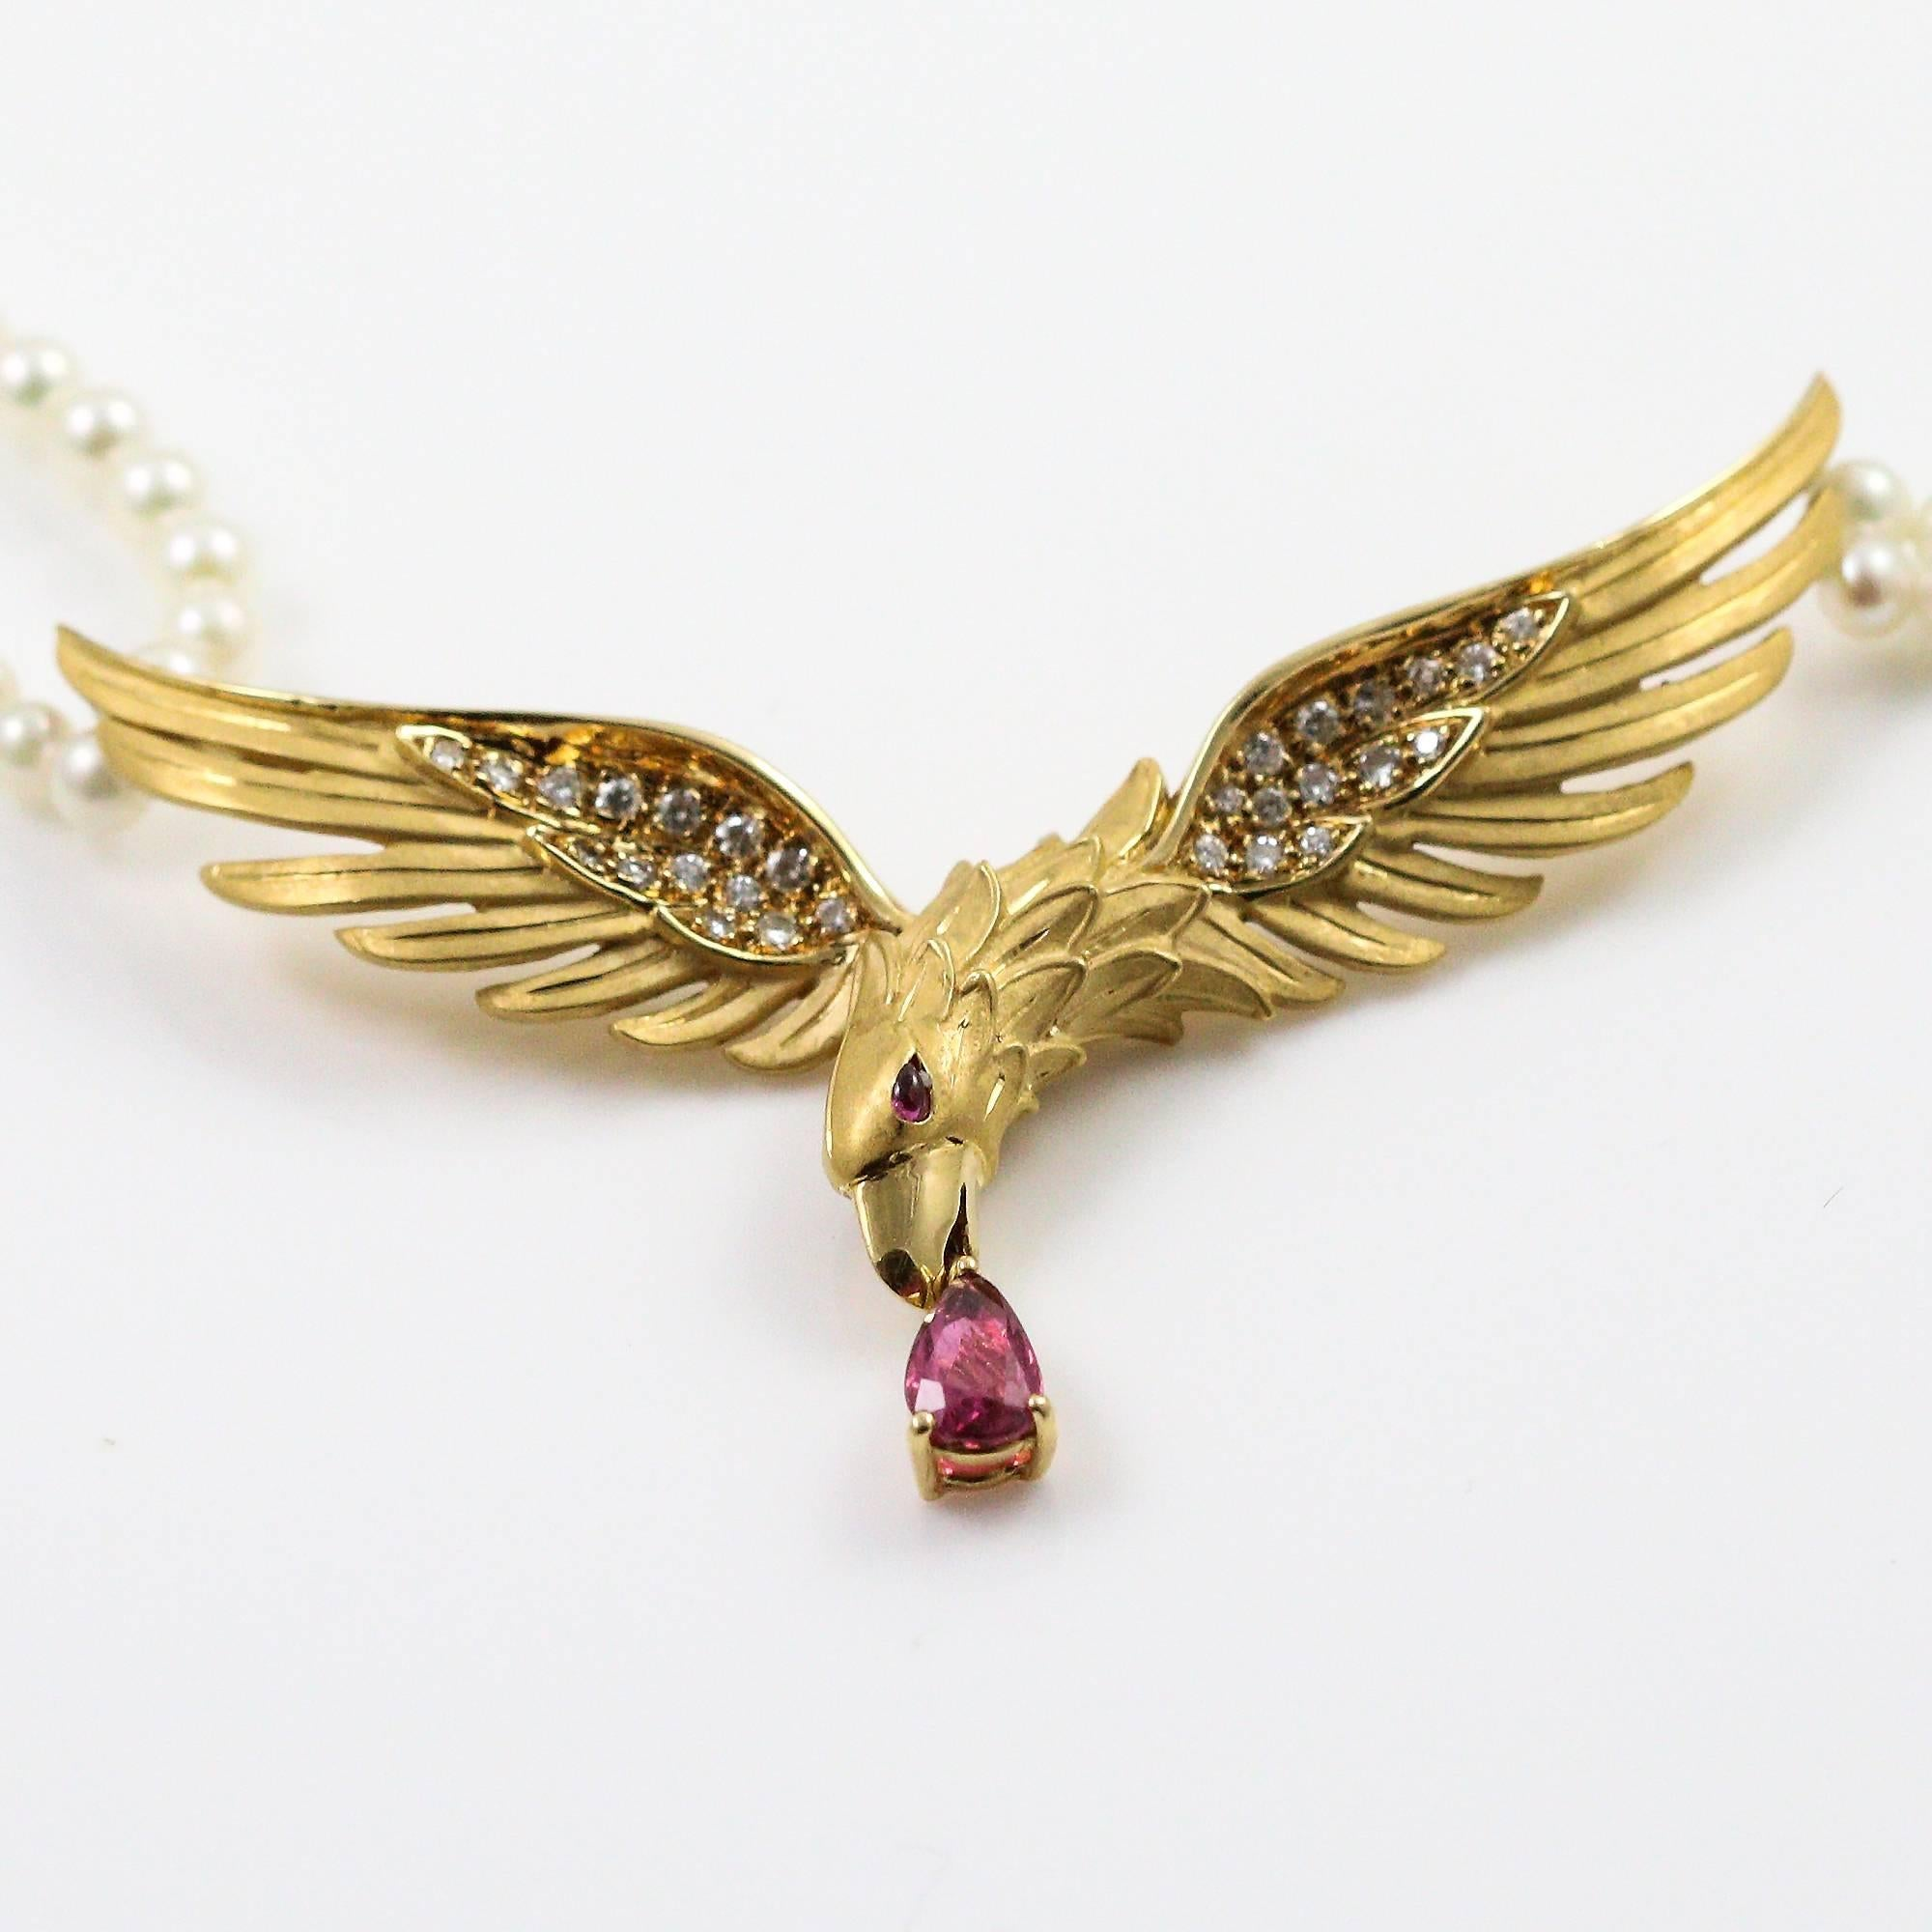 item karat that expand ruby click i gold want eagle lane full vintage to pendant